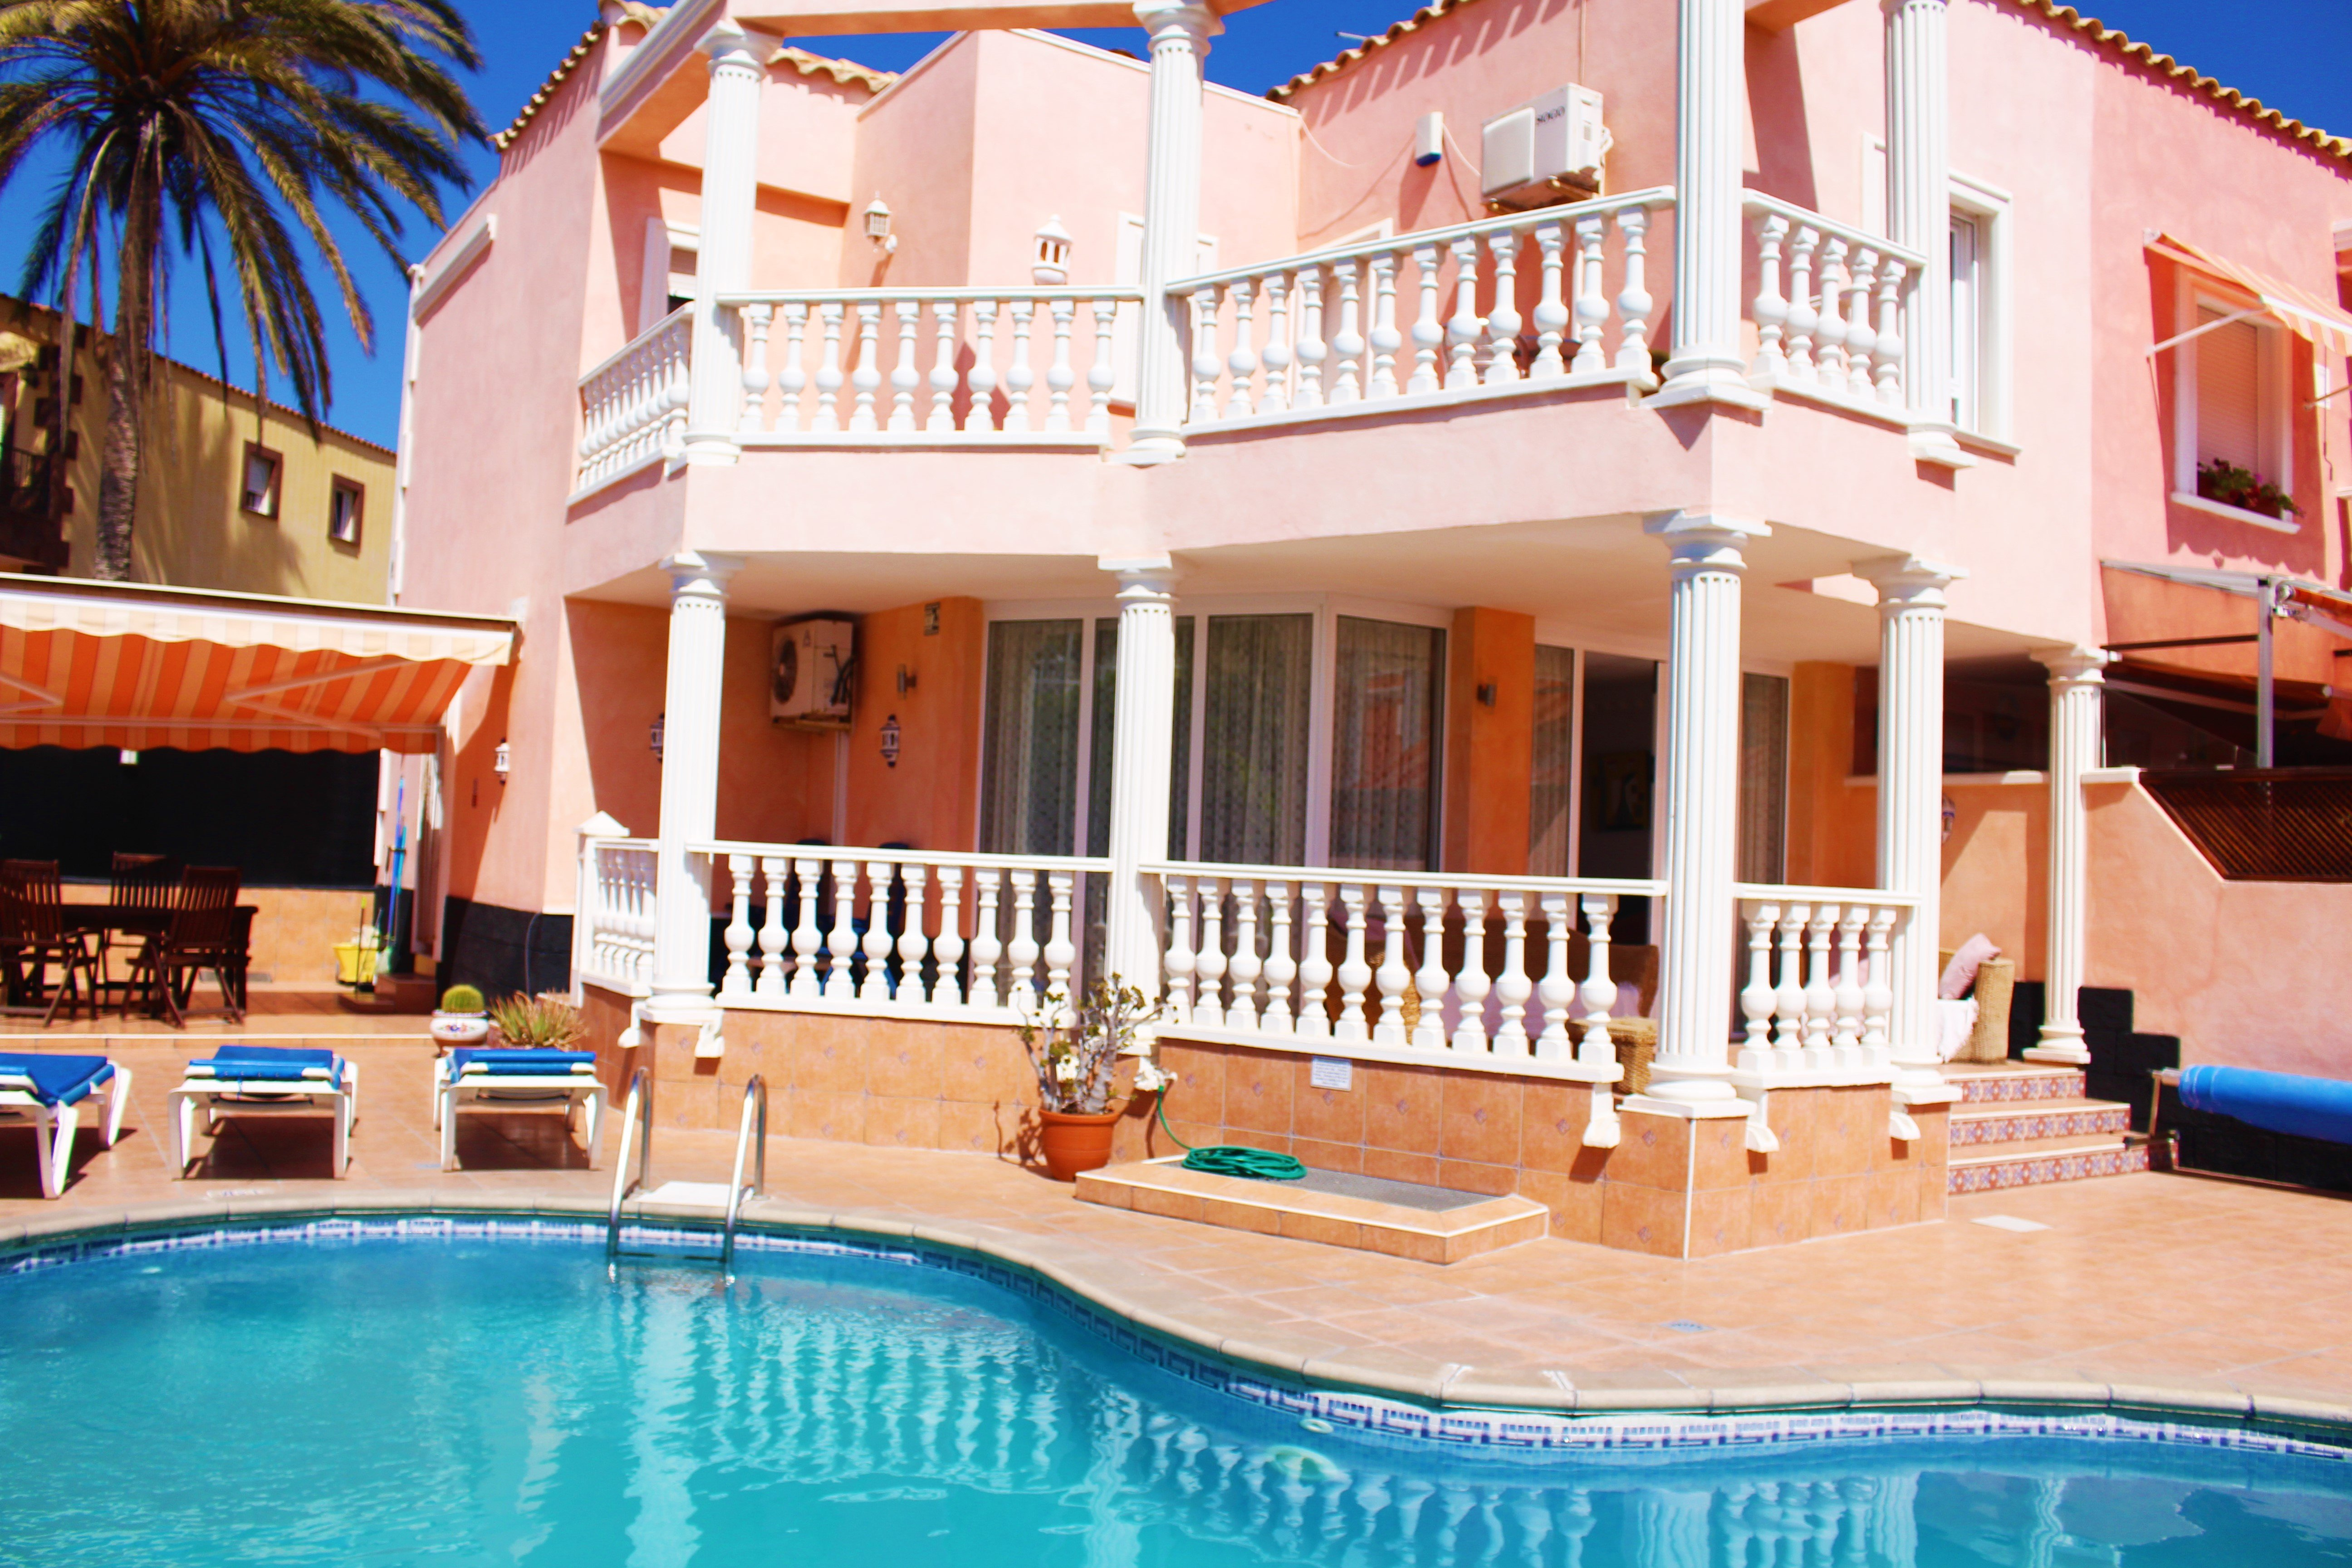 Villas in Spain - holiday rentals Spain | Clickstay